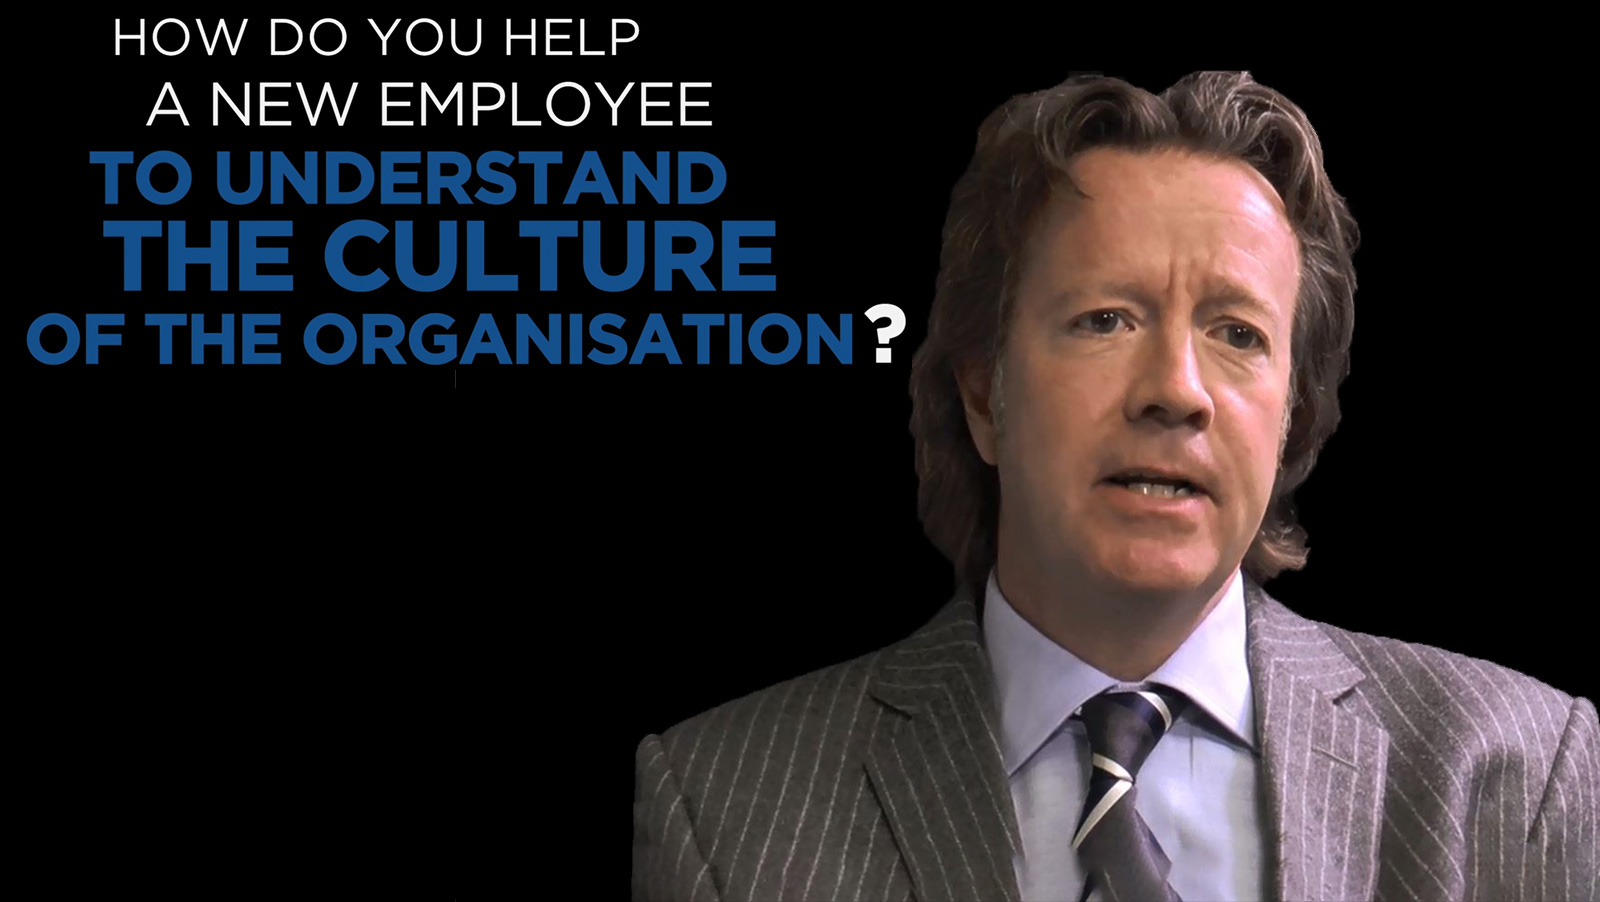 Andy McIver: Shared Experience - How do you help a new employee to understand the culture of the organisation?